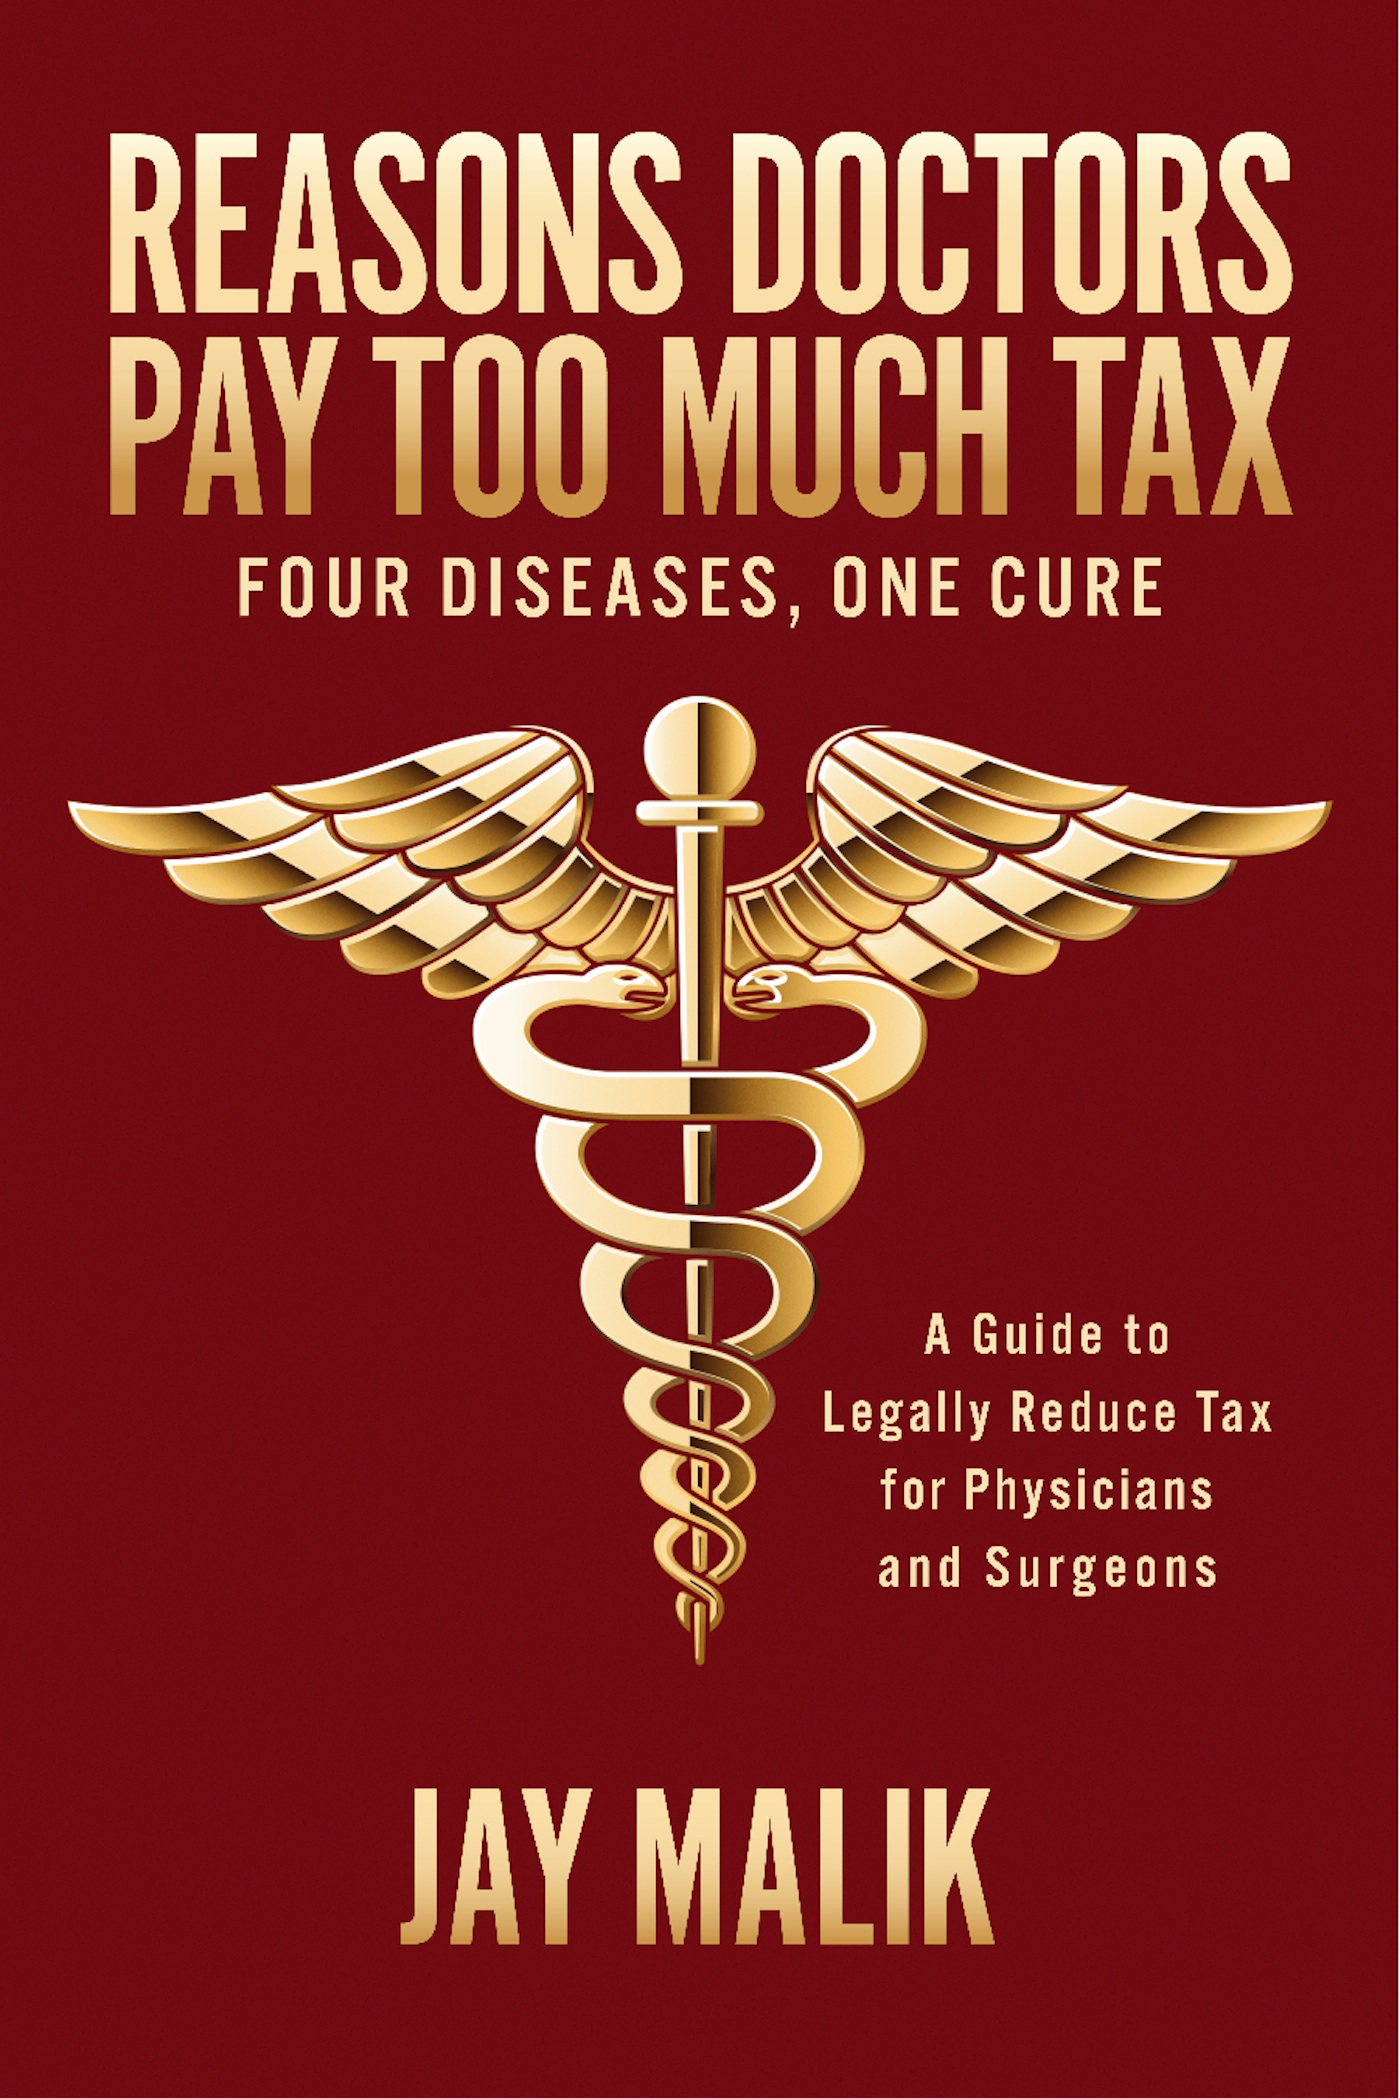 Reasons Doctors Pay Too Much Tax -- Four Diseases, One Cure: A Guide to Legally Reduce Tax for Physicians and Surgeons